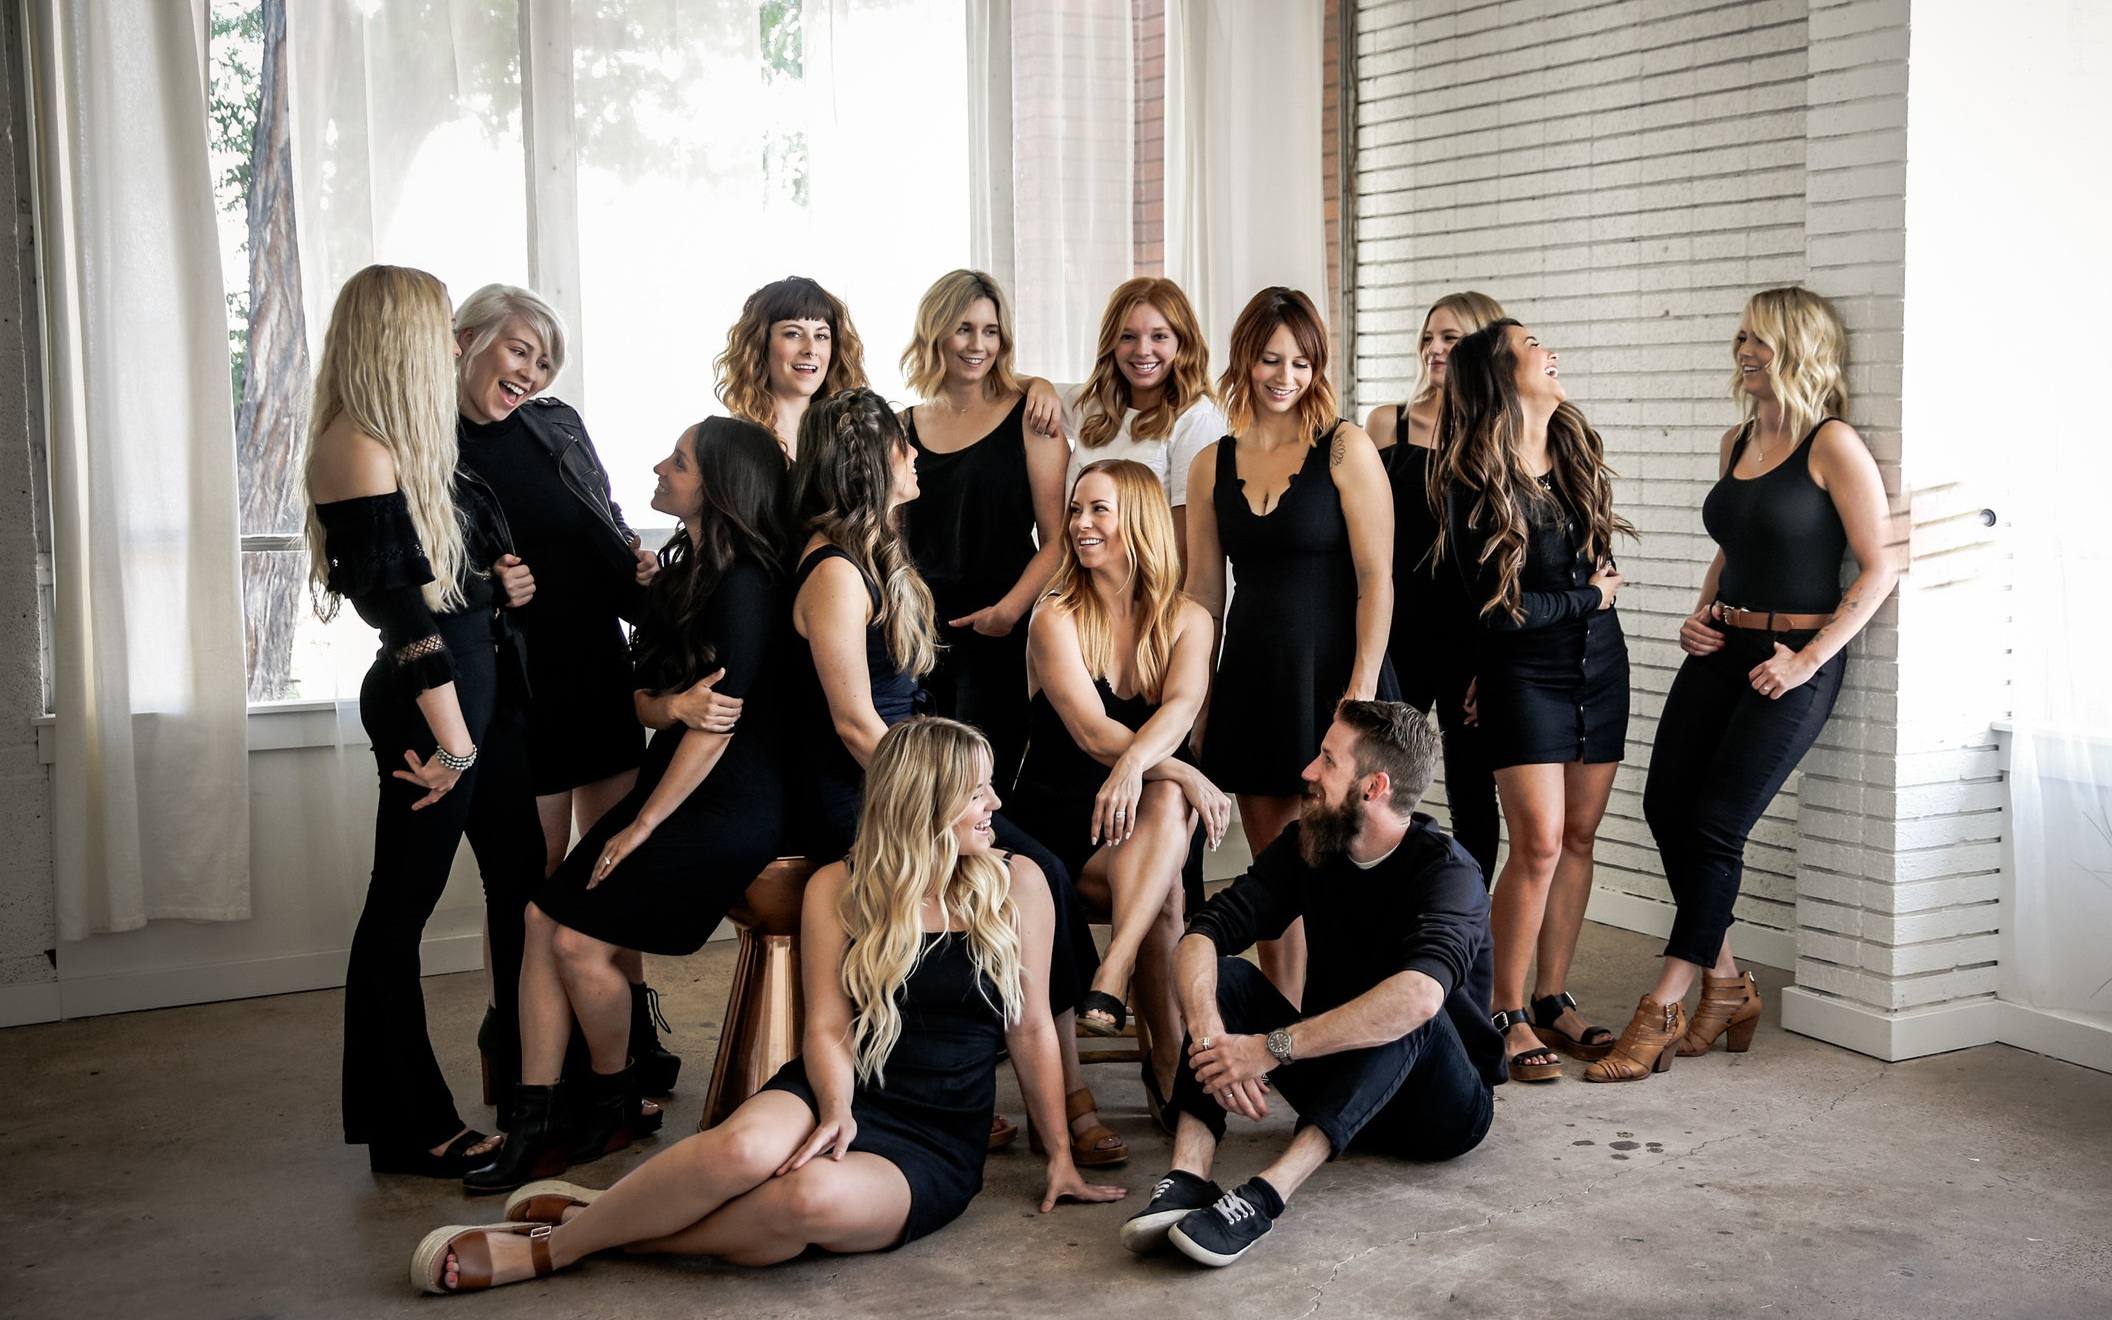 CAREERS AT ELLE.B - Interested in joining our team? Learn more about our salon philosophy and current opportunities.